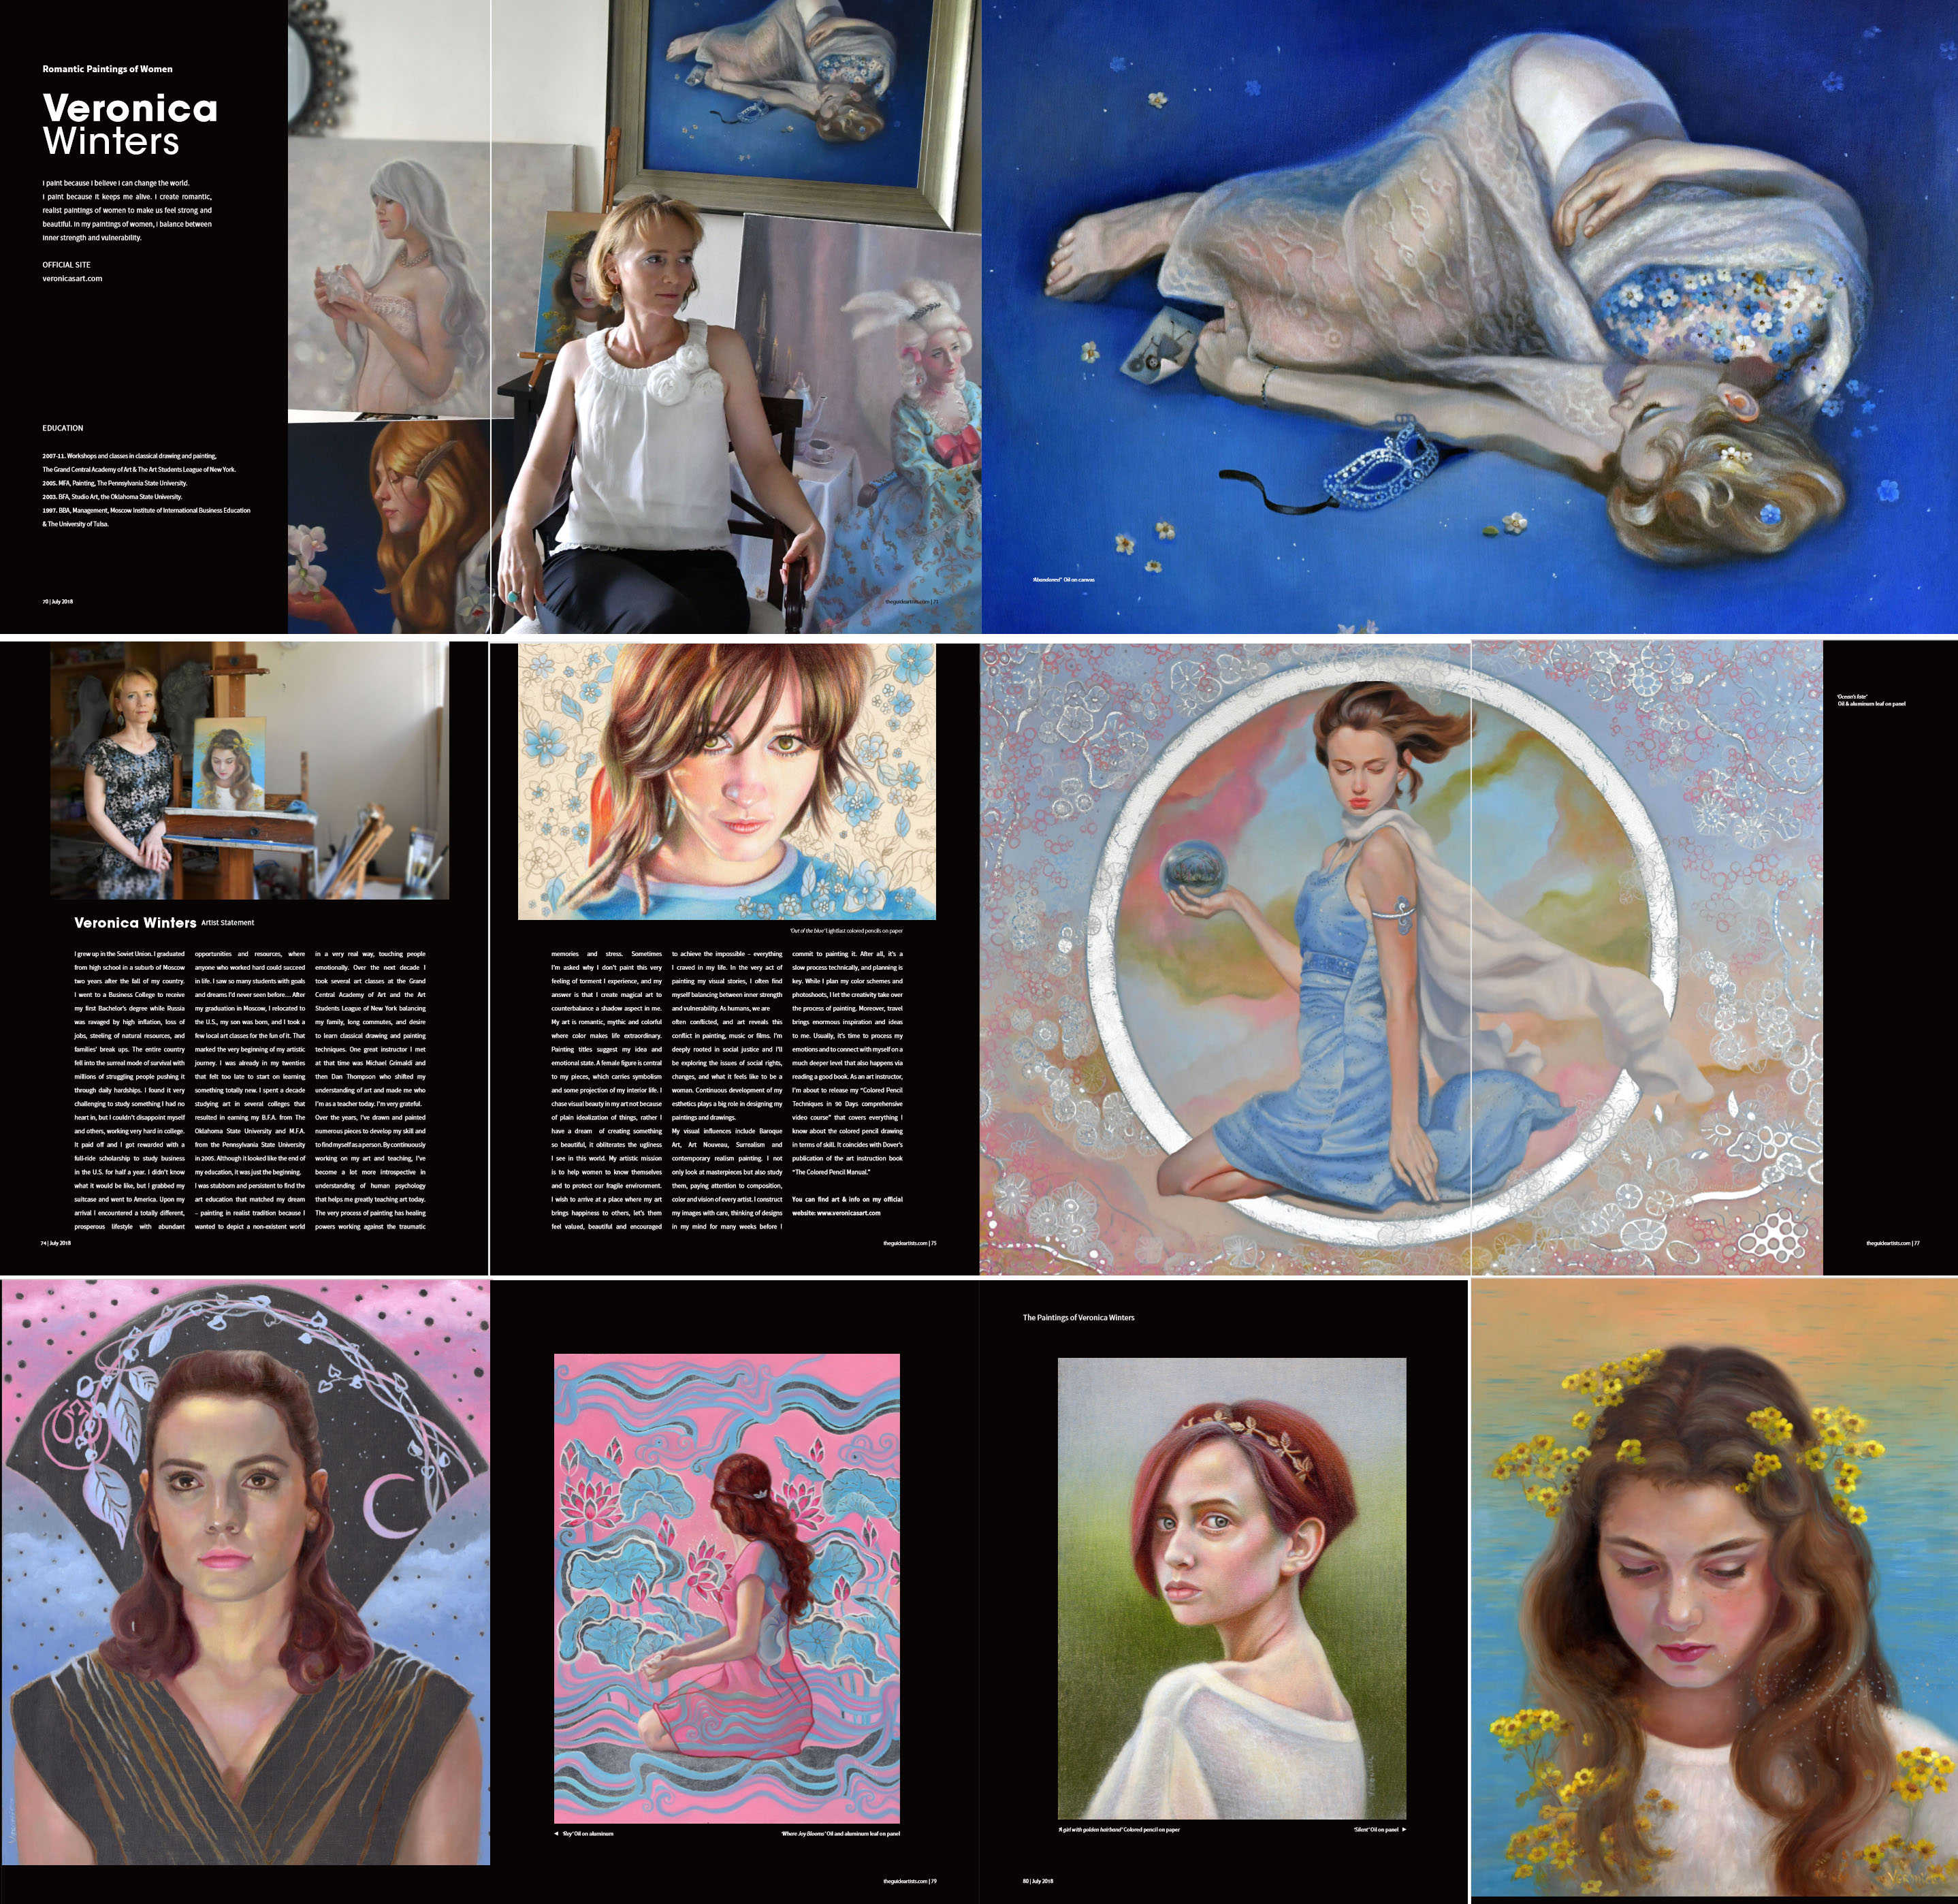 About the artist – Veronica Winters Romantic Paintings of Women